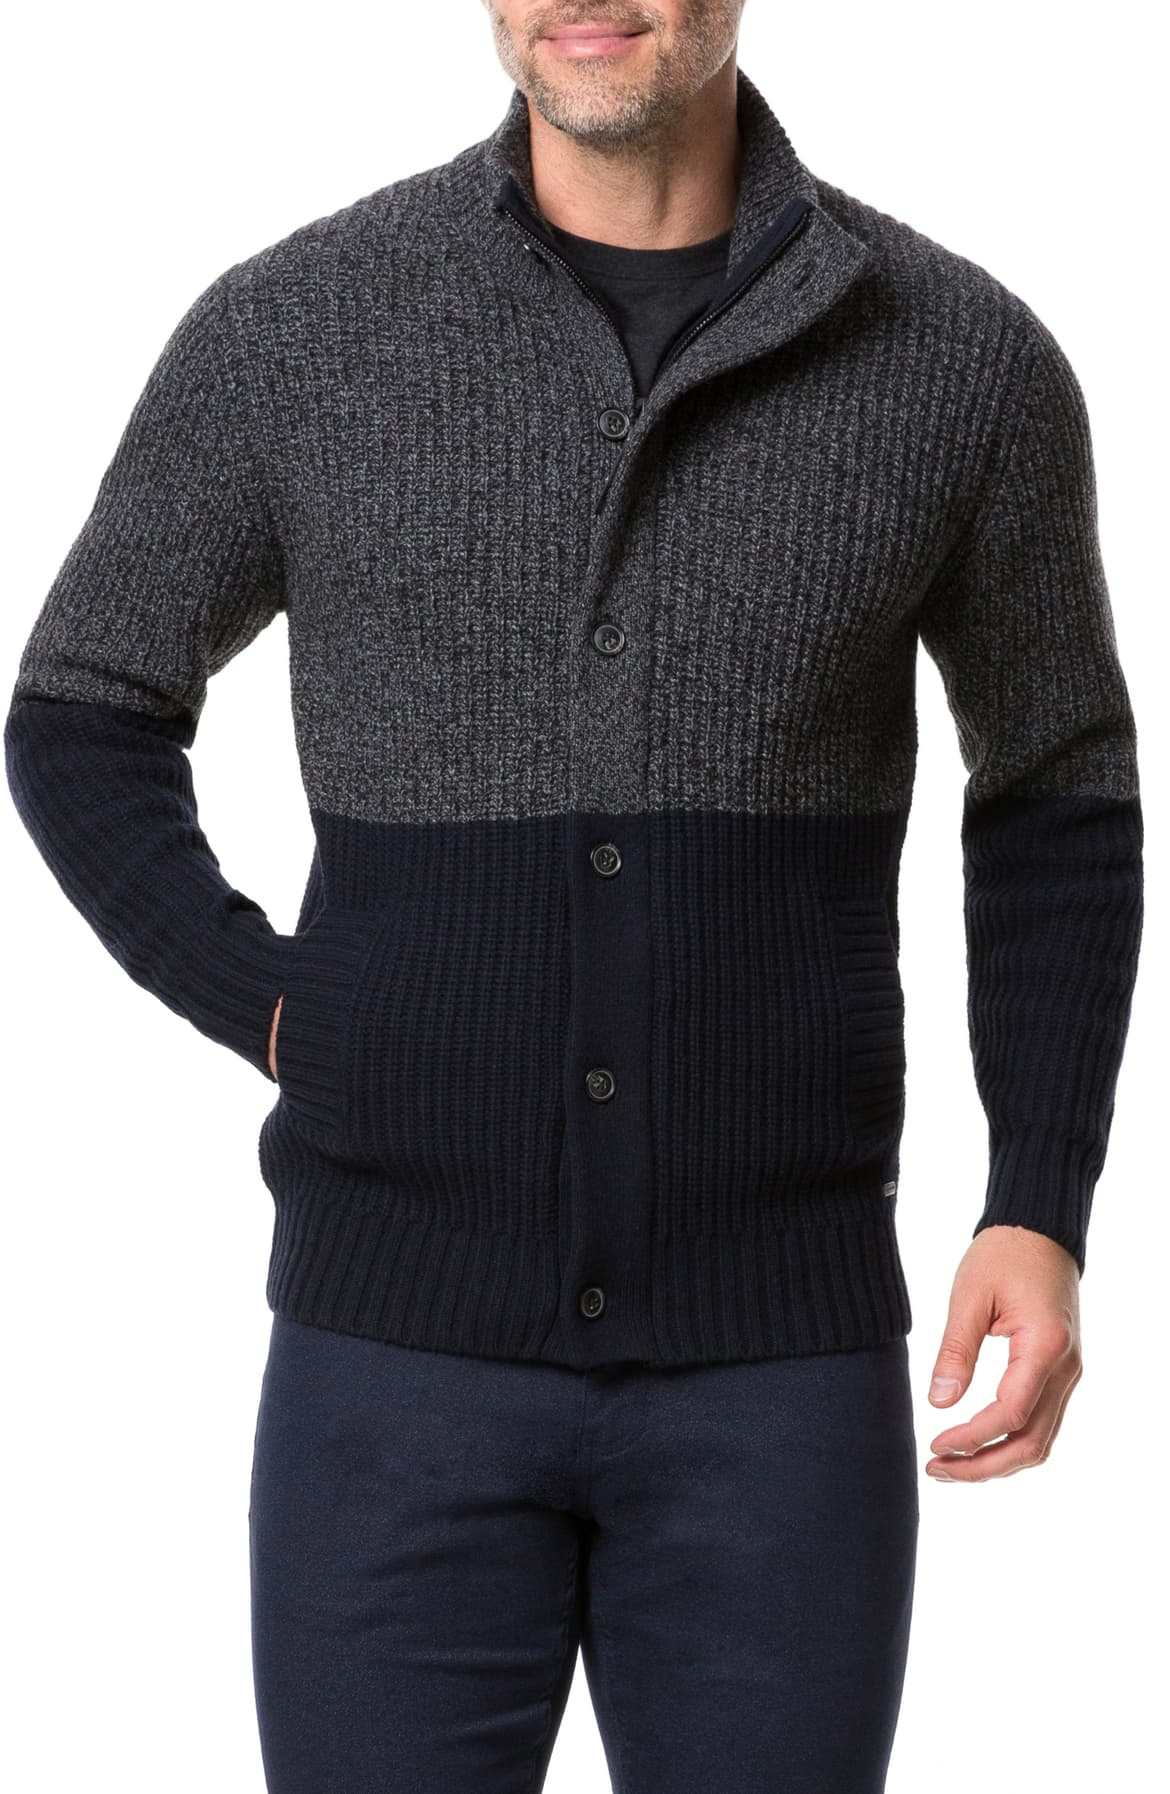 "<p>A colorblocked fisherman sweater that buttons down the front is made from a warm, chunky lambswool blend.{&nbsp;}<a  href=""https://shop.nordstrom.com/s/rodd-gunn-lake-heron-colorblock-wool-blend-fisherman-sweater/5402051/full?origin=keywordsearch-personalizedsort&breadcrumb=Home%2FAll%20Results&color=gunmetal"" target=""_blank"" title=""https://shop.nordstrom.com/s/rodd-gunn-lake-heron-colorblock-wool-blend-fisherman-sweater/5402051/full?origin=keywordsearch-personalizedsort&breadcrumb=Home%2FAll%20Results&color=gunmetal"">Shop it</a>{&nbsp;}(Image: Nordstrom){&nbsp;}</p>"